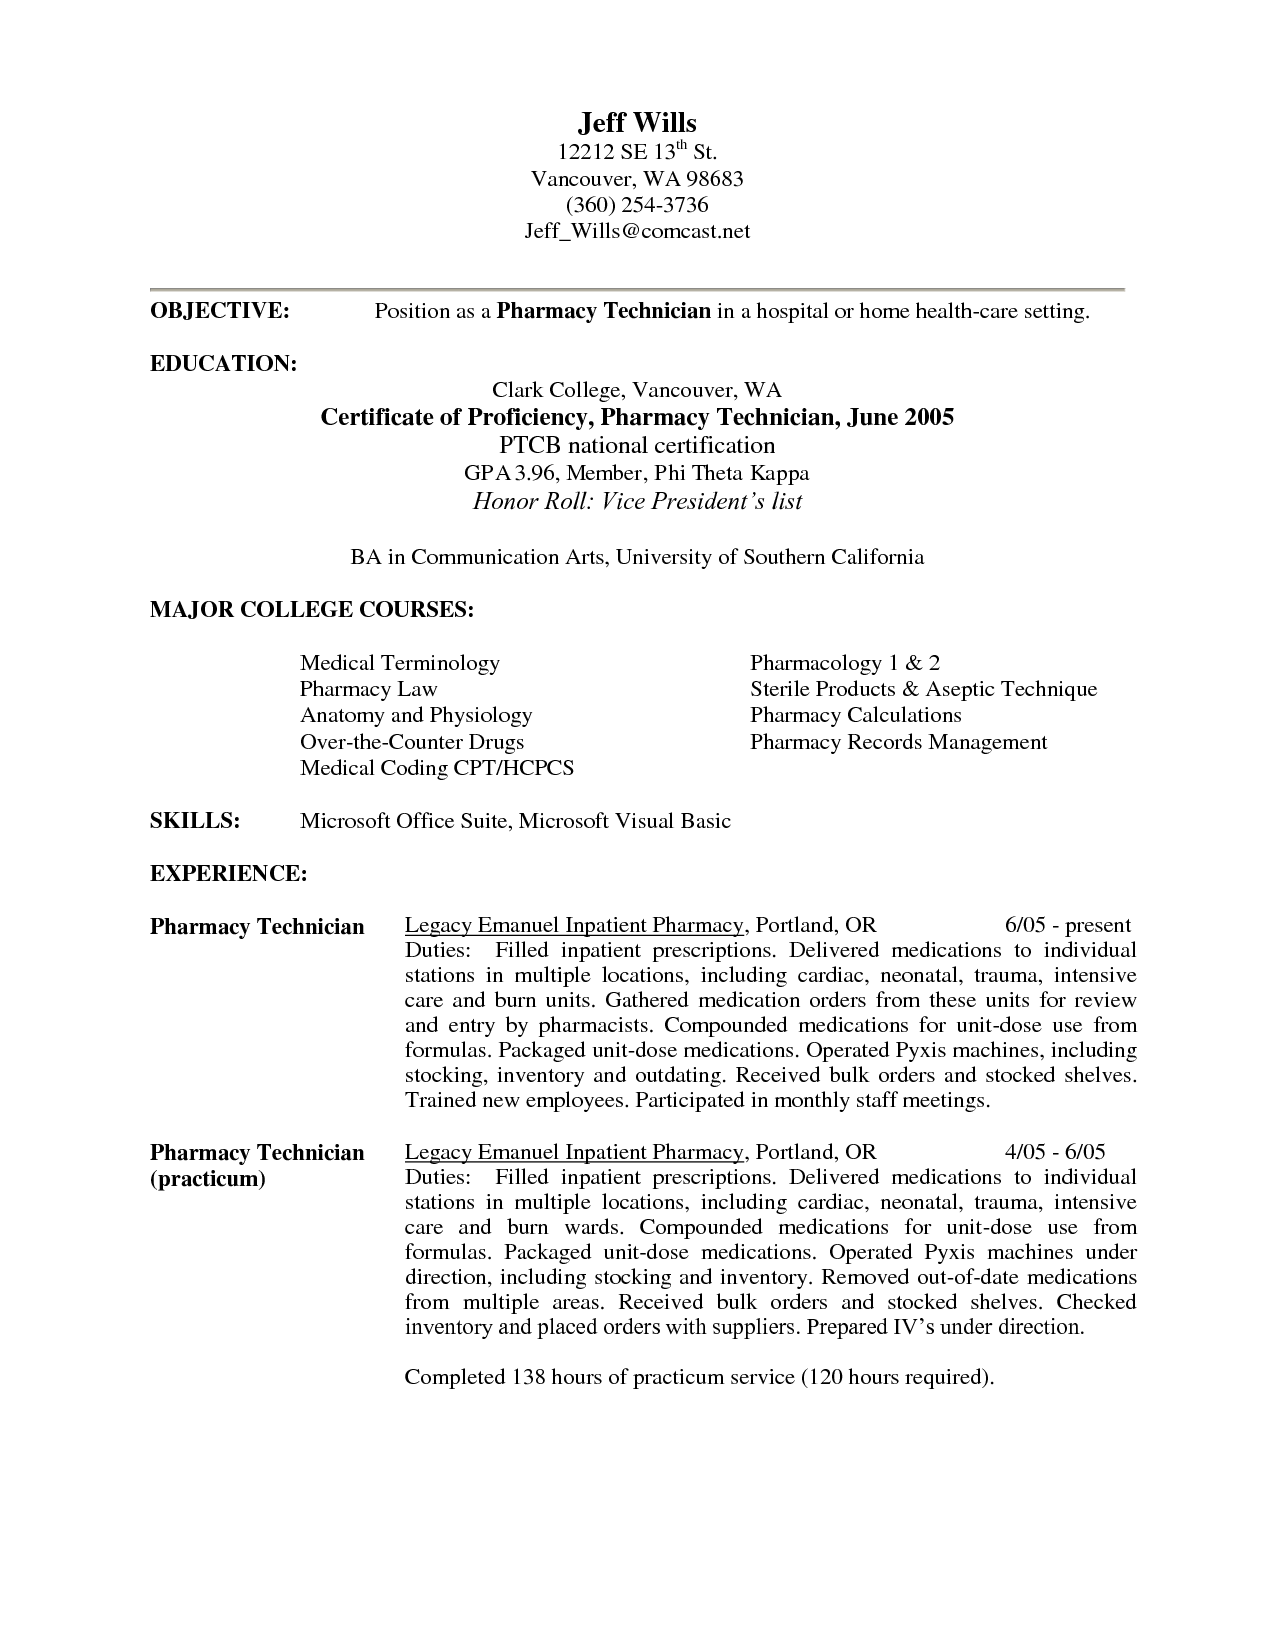 Delightful Pharmacy Technician Objective Resume Samples For Resume Pharmacy Technician